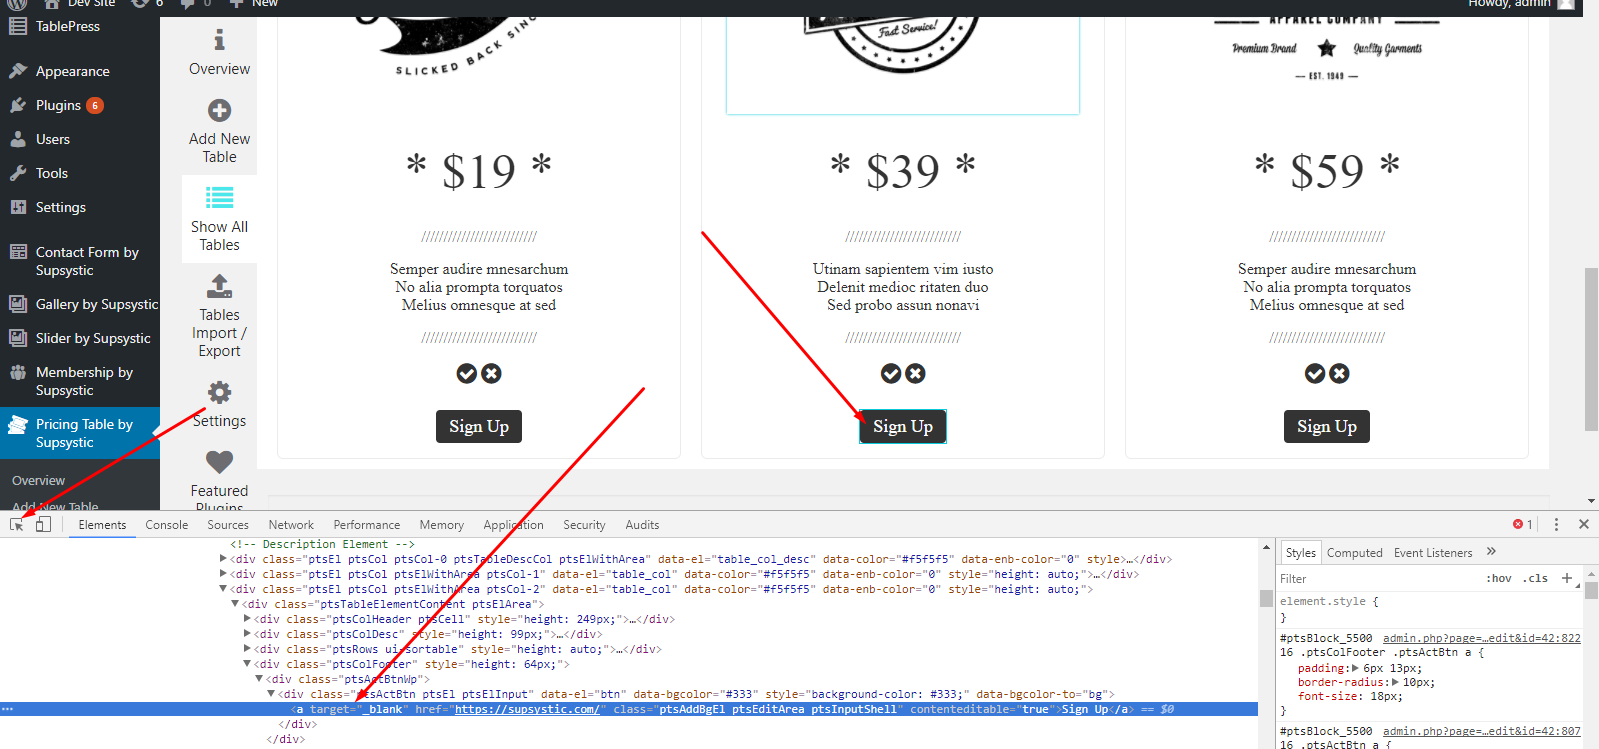 pricing table code in console